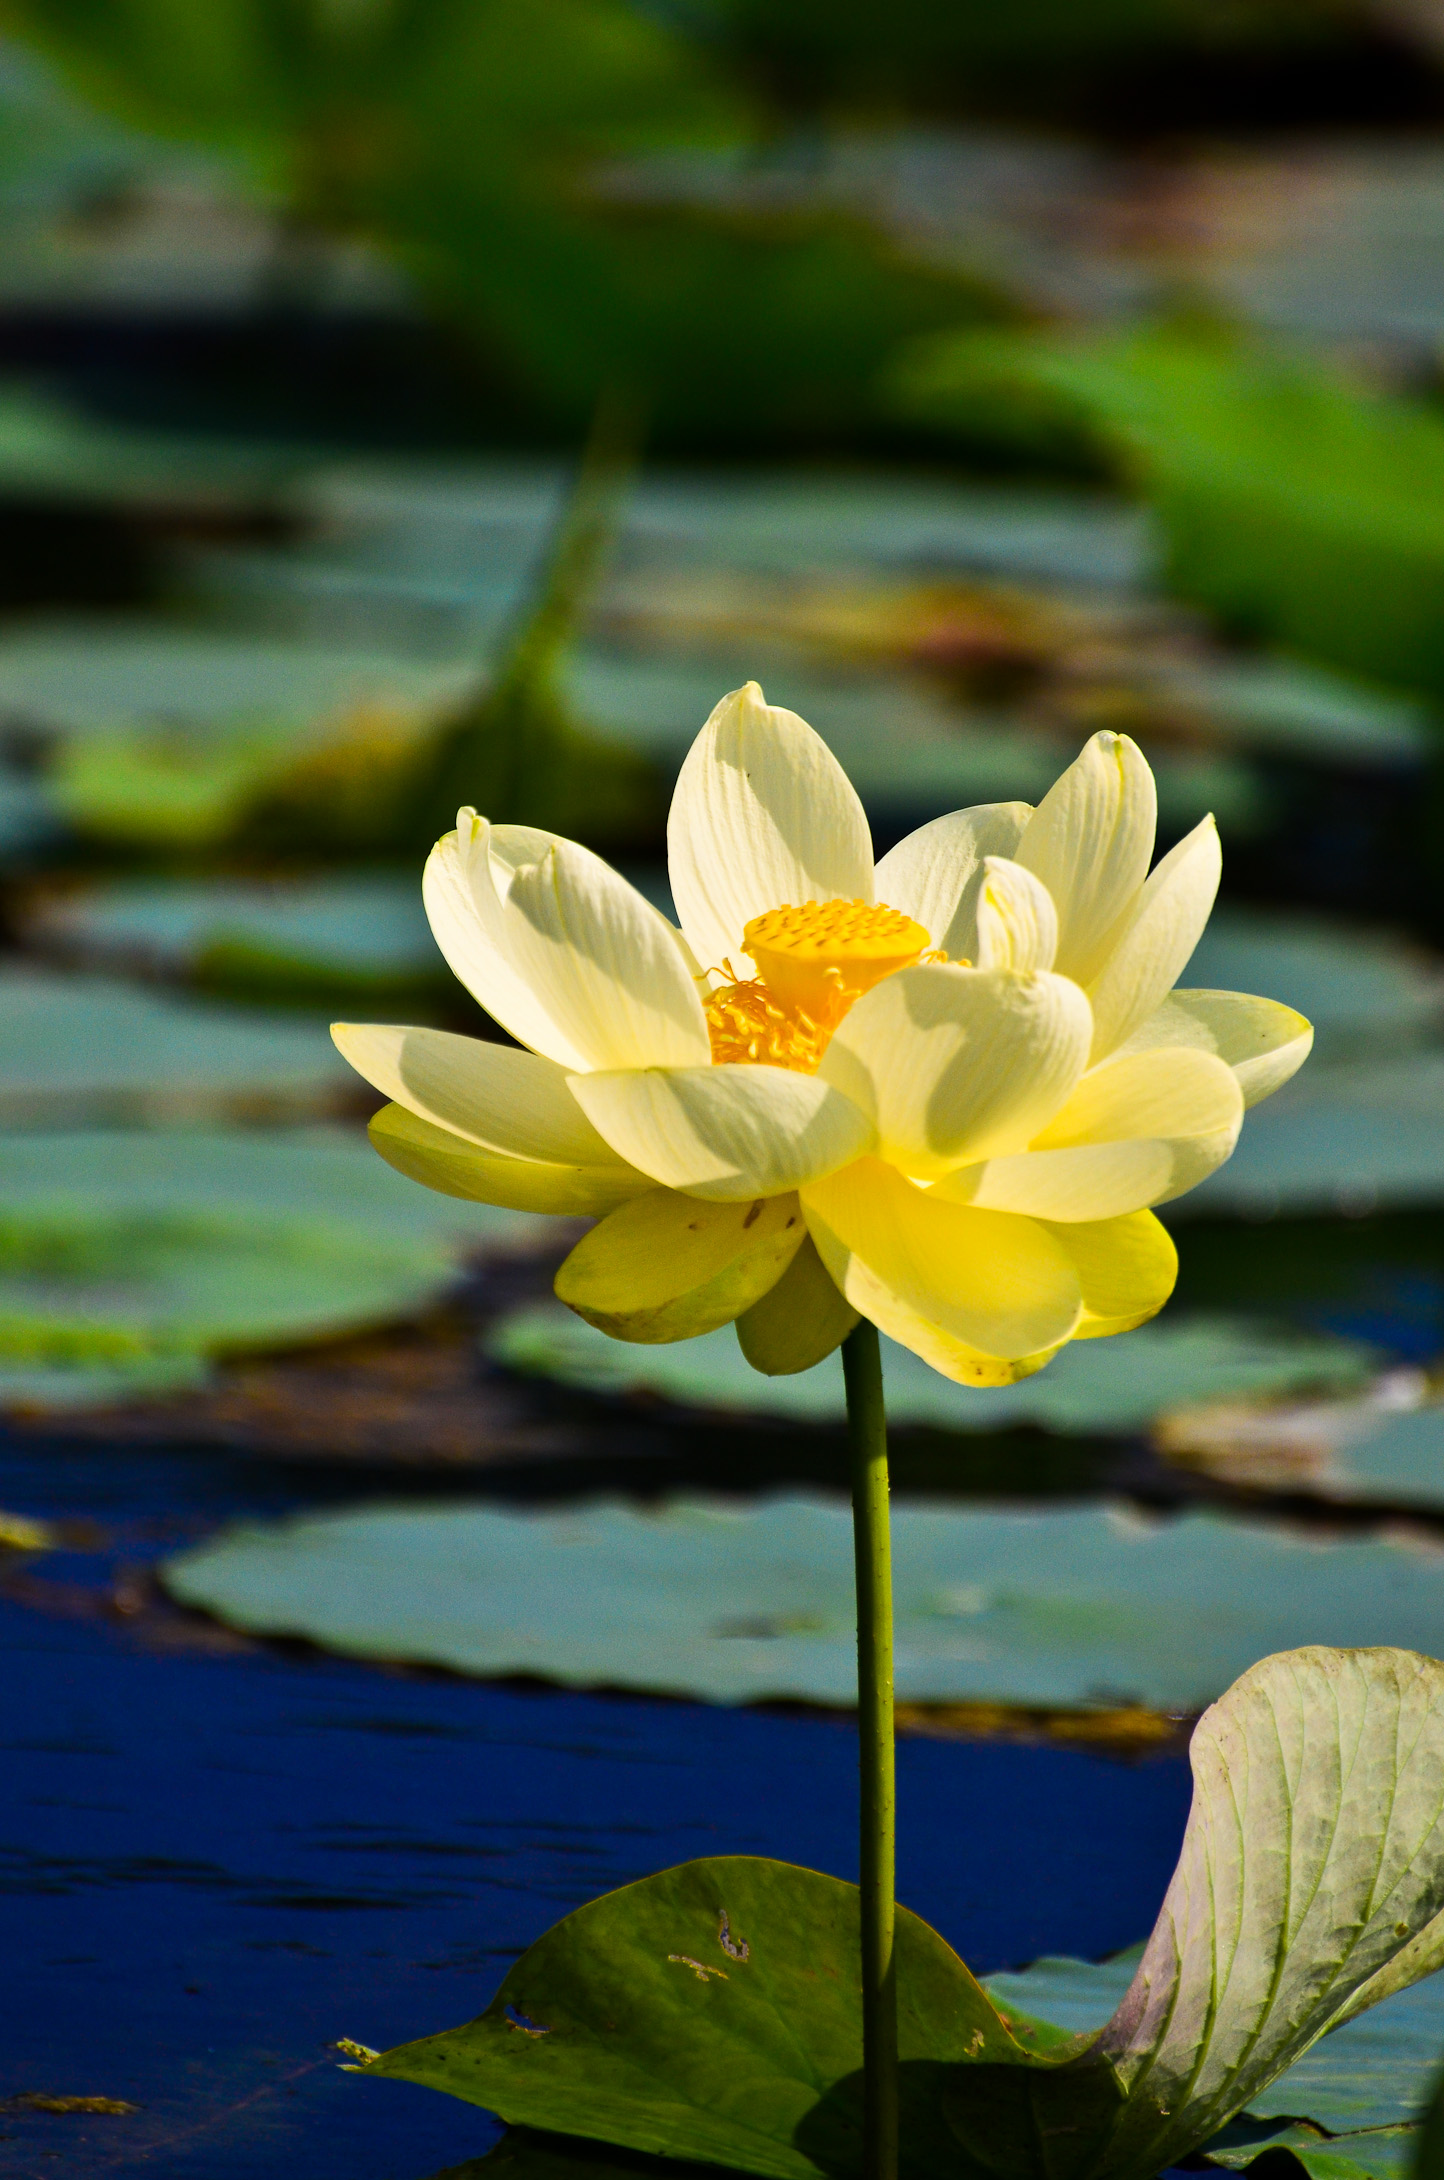 Lotus Flower And Water Everyday Nature Scenes